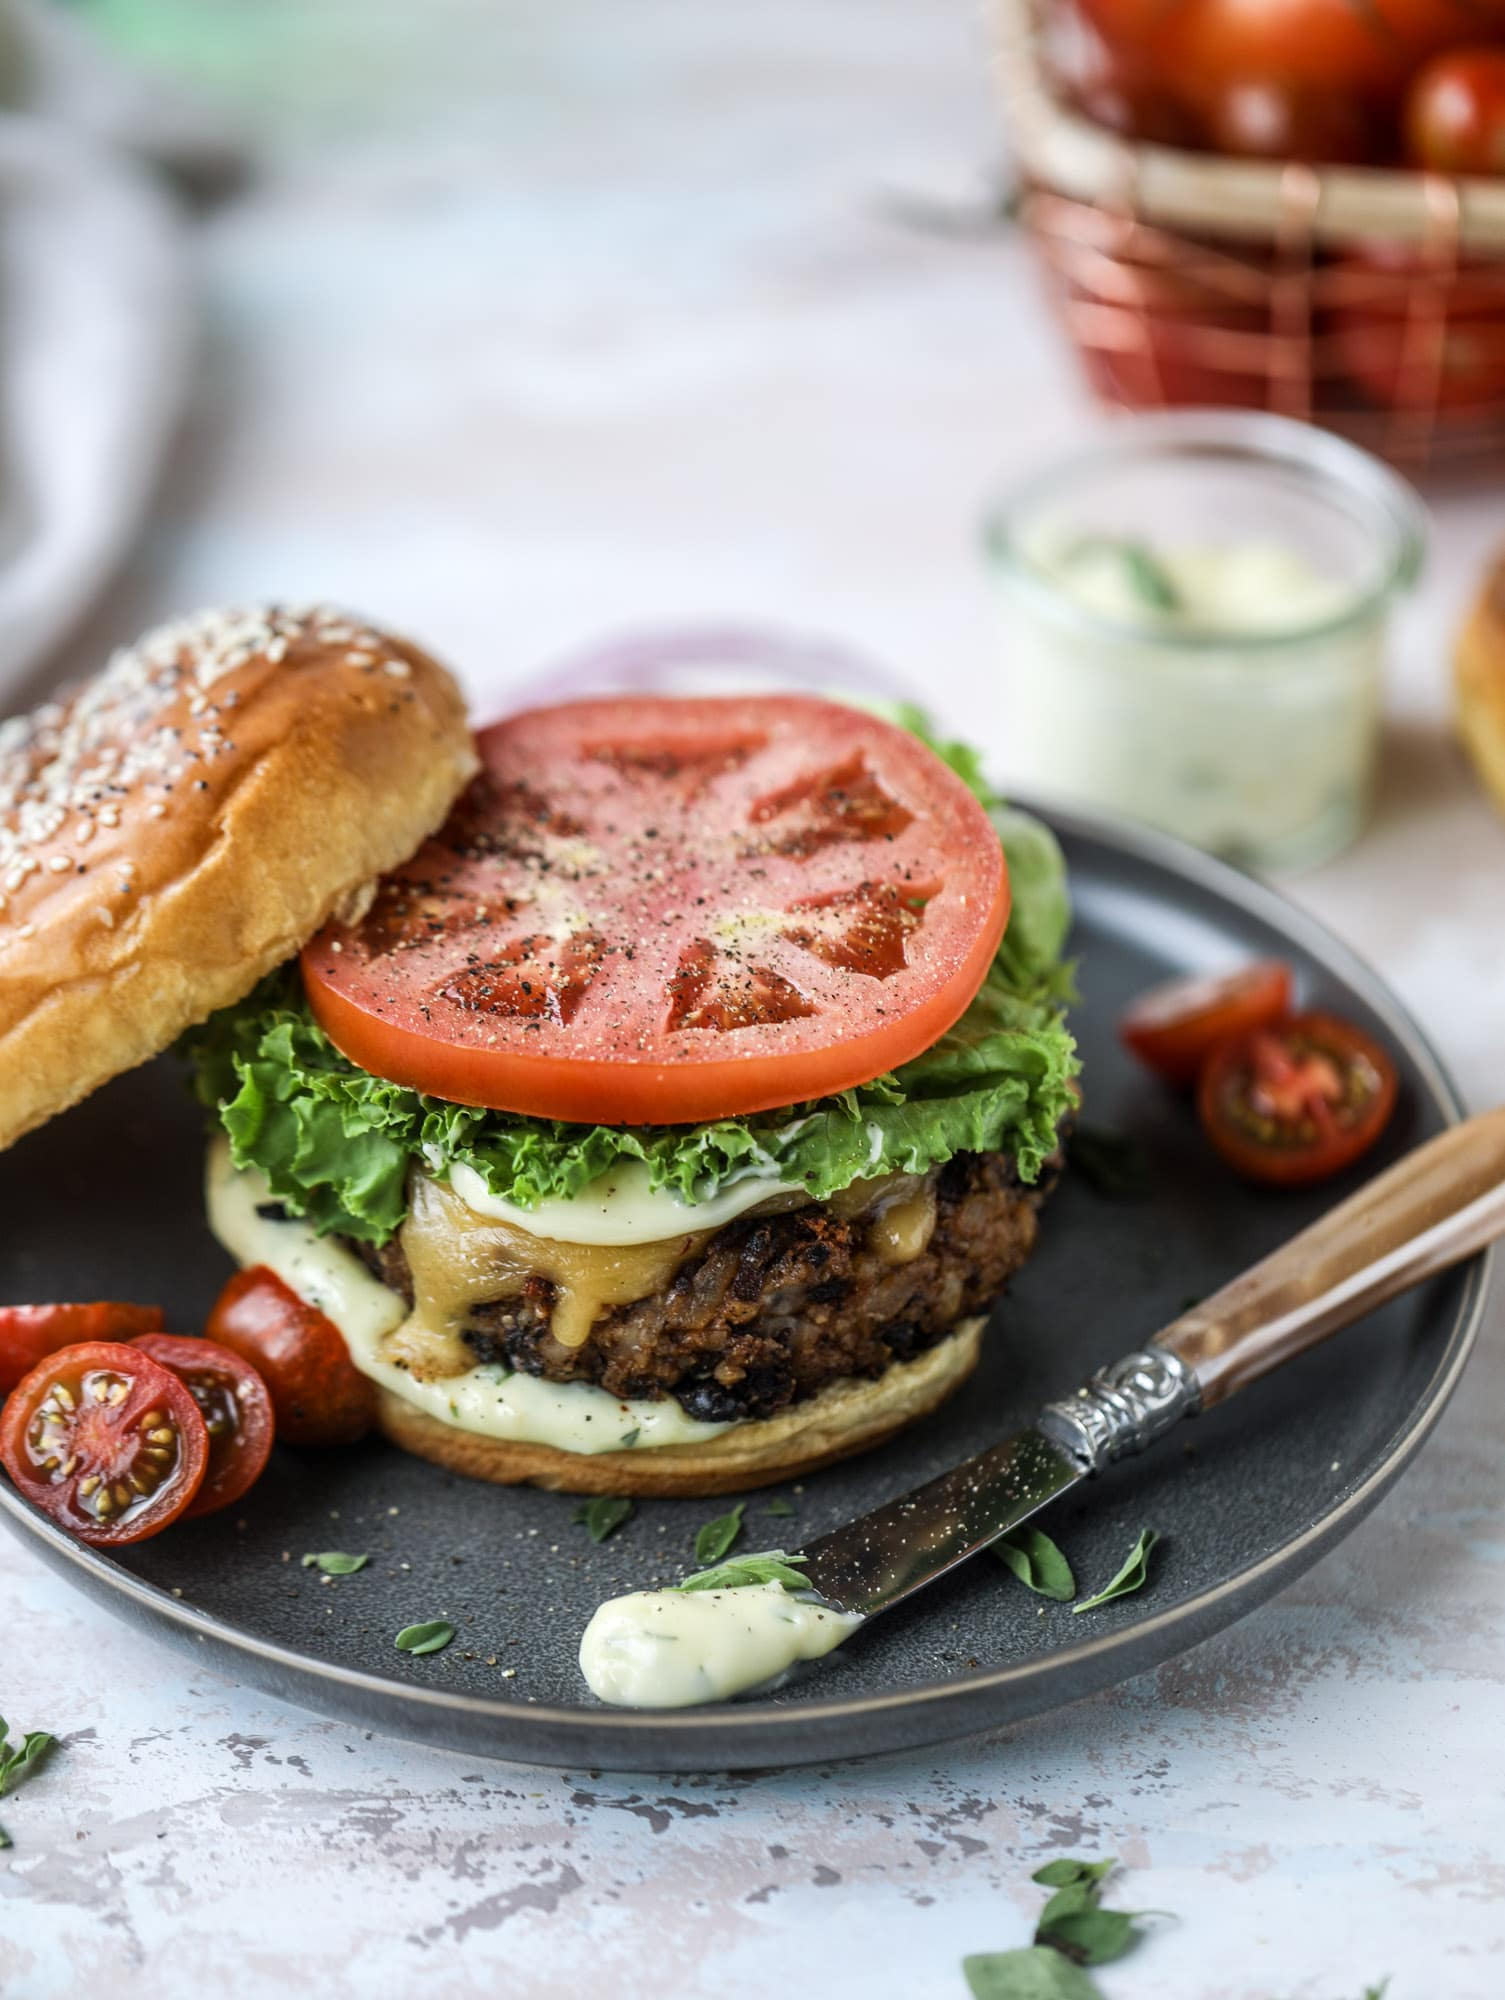 This is the best ever veggie burger and that is not an exaggeration! It's delicious, full of texture and chew, super satisfying and actually sticks together in the pan. You can serve it on buns, make a patty melt, a salad or lettuce wraps - perfection! I howsweeteats.com #best #veggie #burger #vegetarian #beans #quinoa